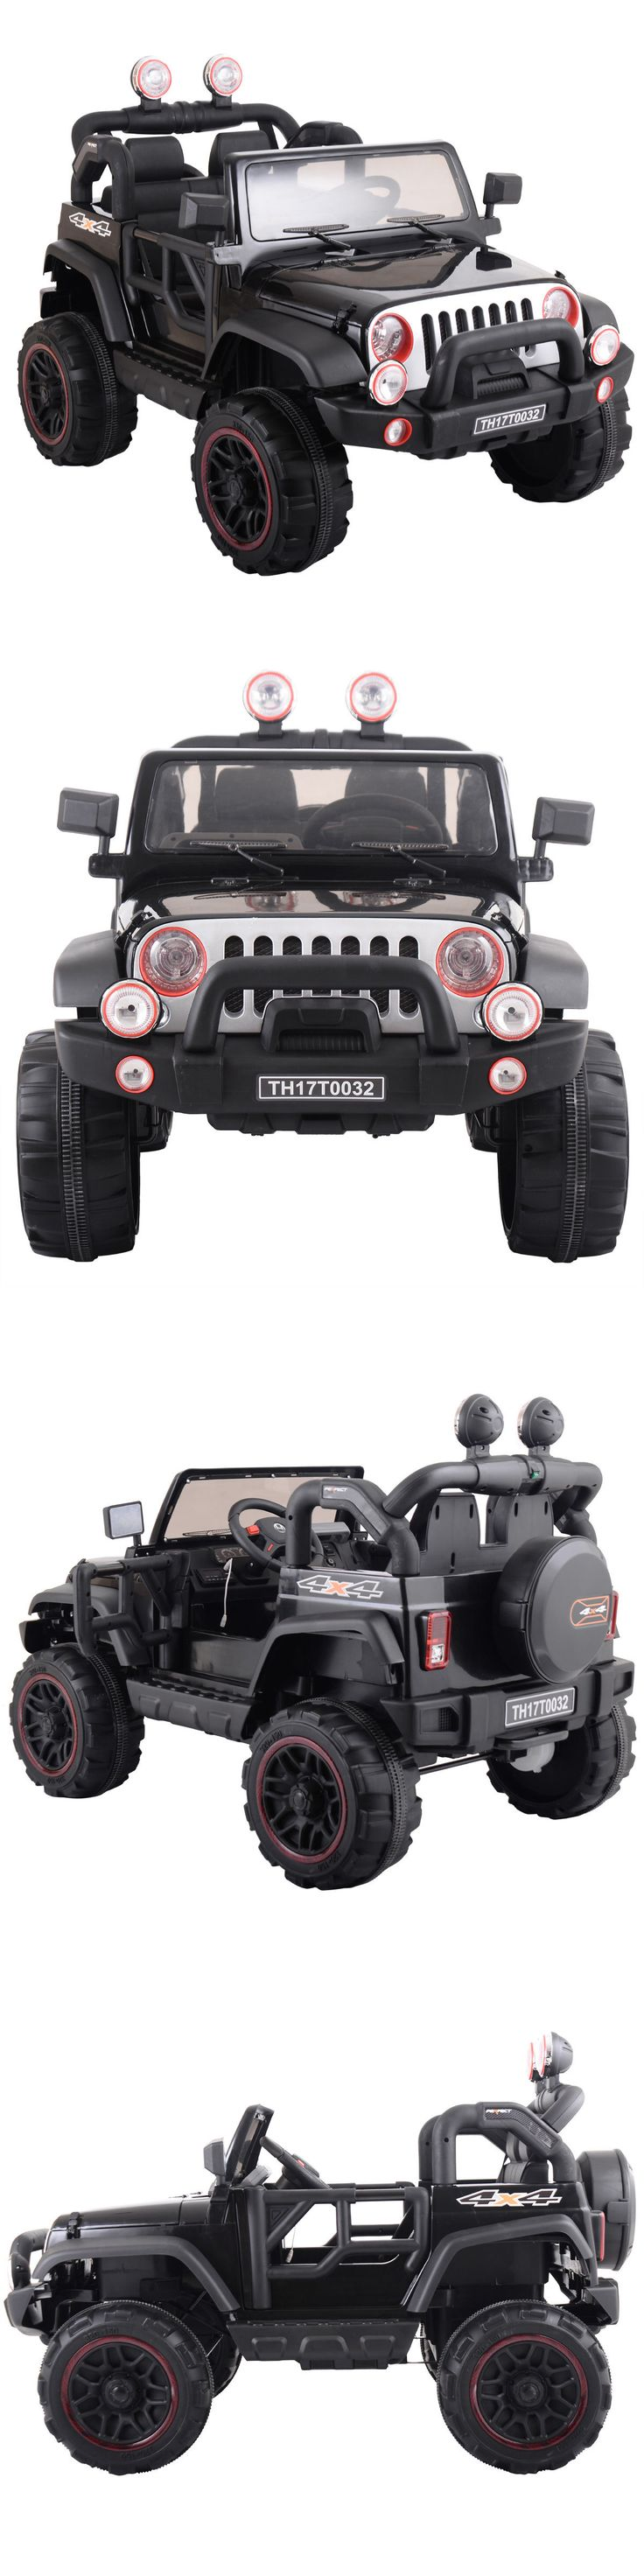 Ride On Toys and Accessories 145944: 12V Jeep Style Kids Ride On Battery Powered Electric Car W Remote Control Black -> BUY IT NOW ONLY: $248.99 on eBay!